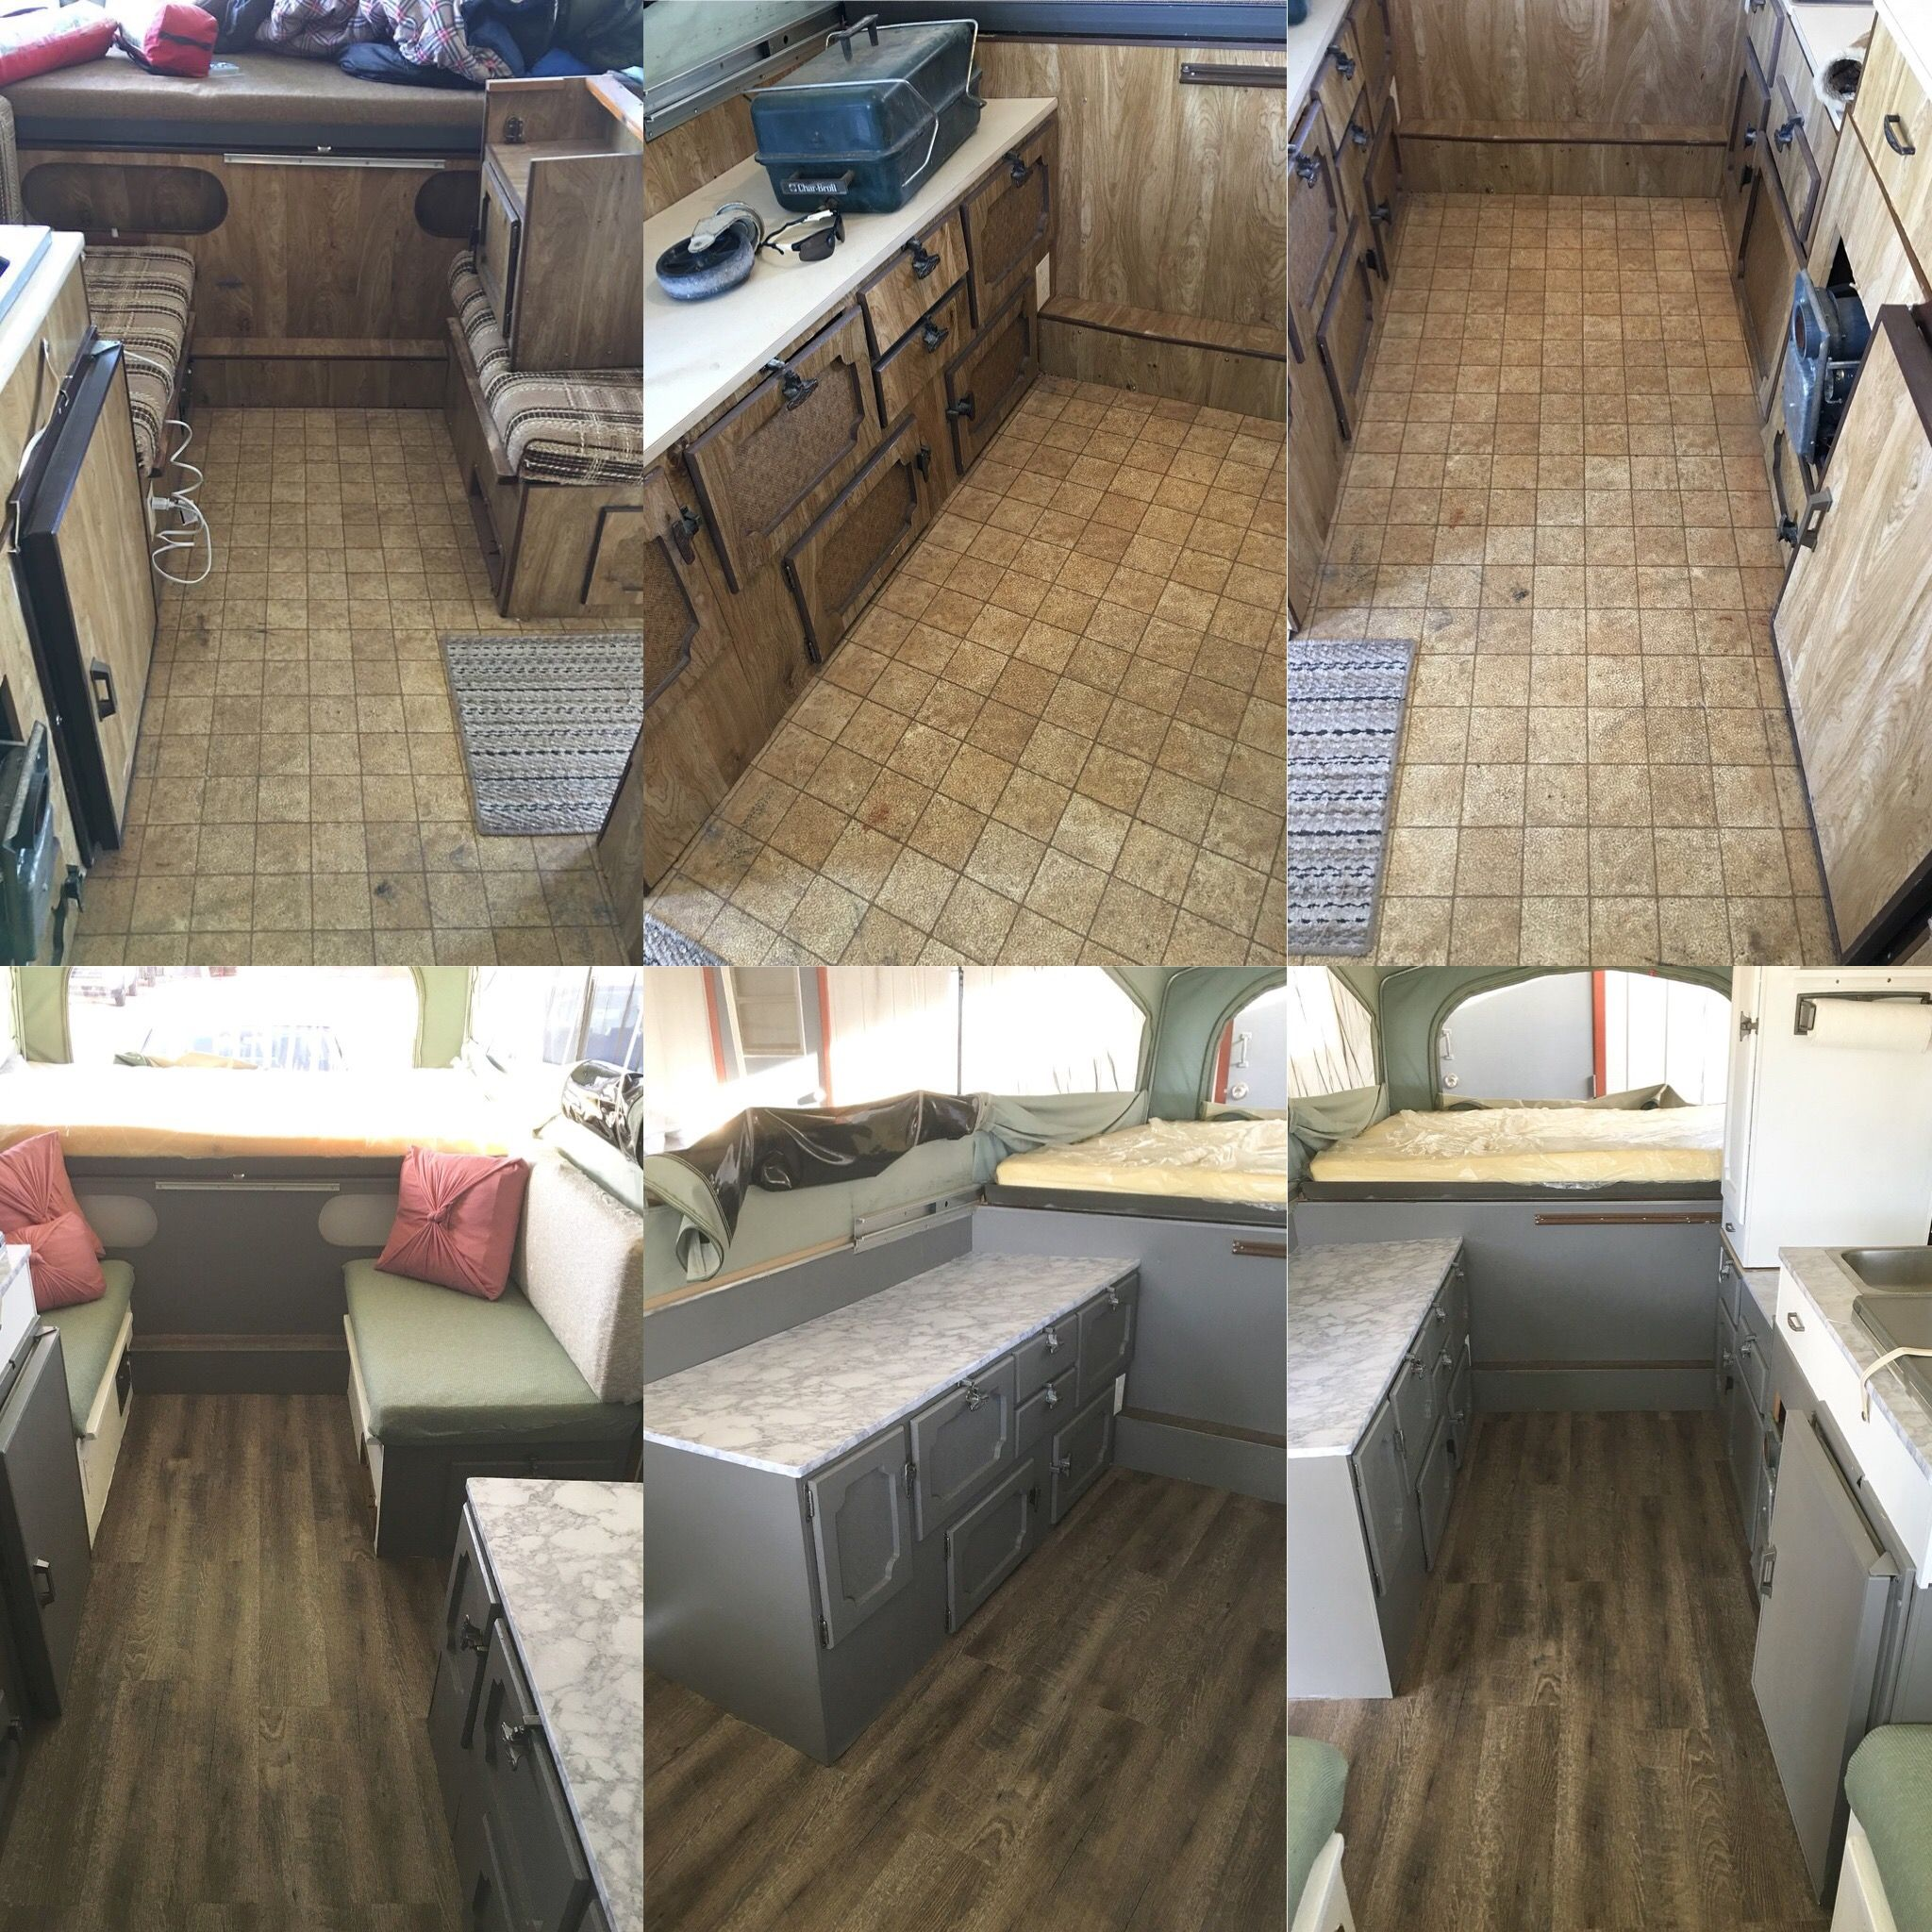 This Our Remodel Of A 1984 Jayco Pop Up Camper Took About 2 Weeks